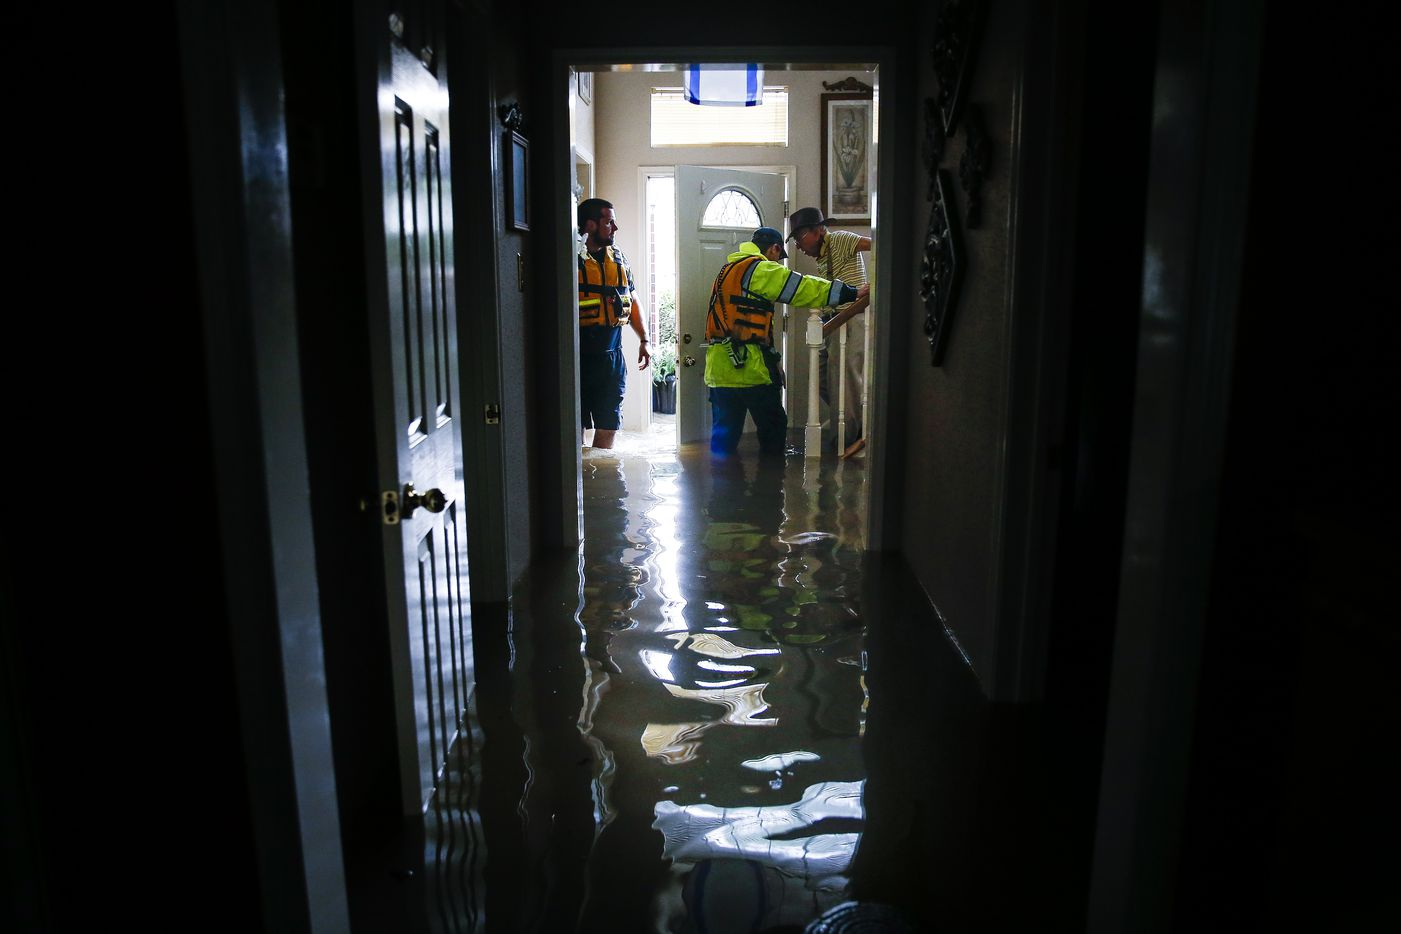 Cy-Fair volunteer firefighters help Ovidio Gutierrez down the stairs of their flooded house and into a waiting fire department truck in the Concord Bridge neighborhood as Addicks Reservoir surpasses capacity due to near constant rain from Tropical Storm Harvey Tuesday, Aug. 29, 2017 in Houston.